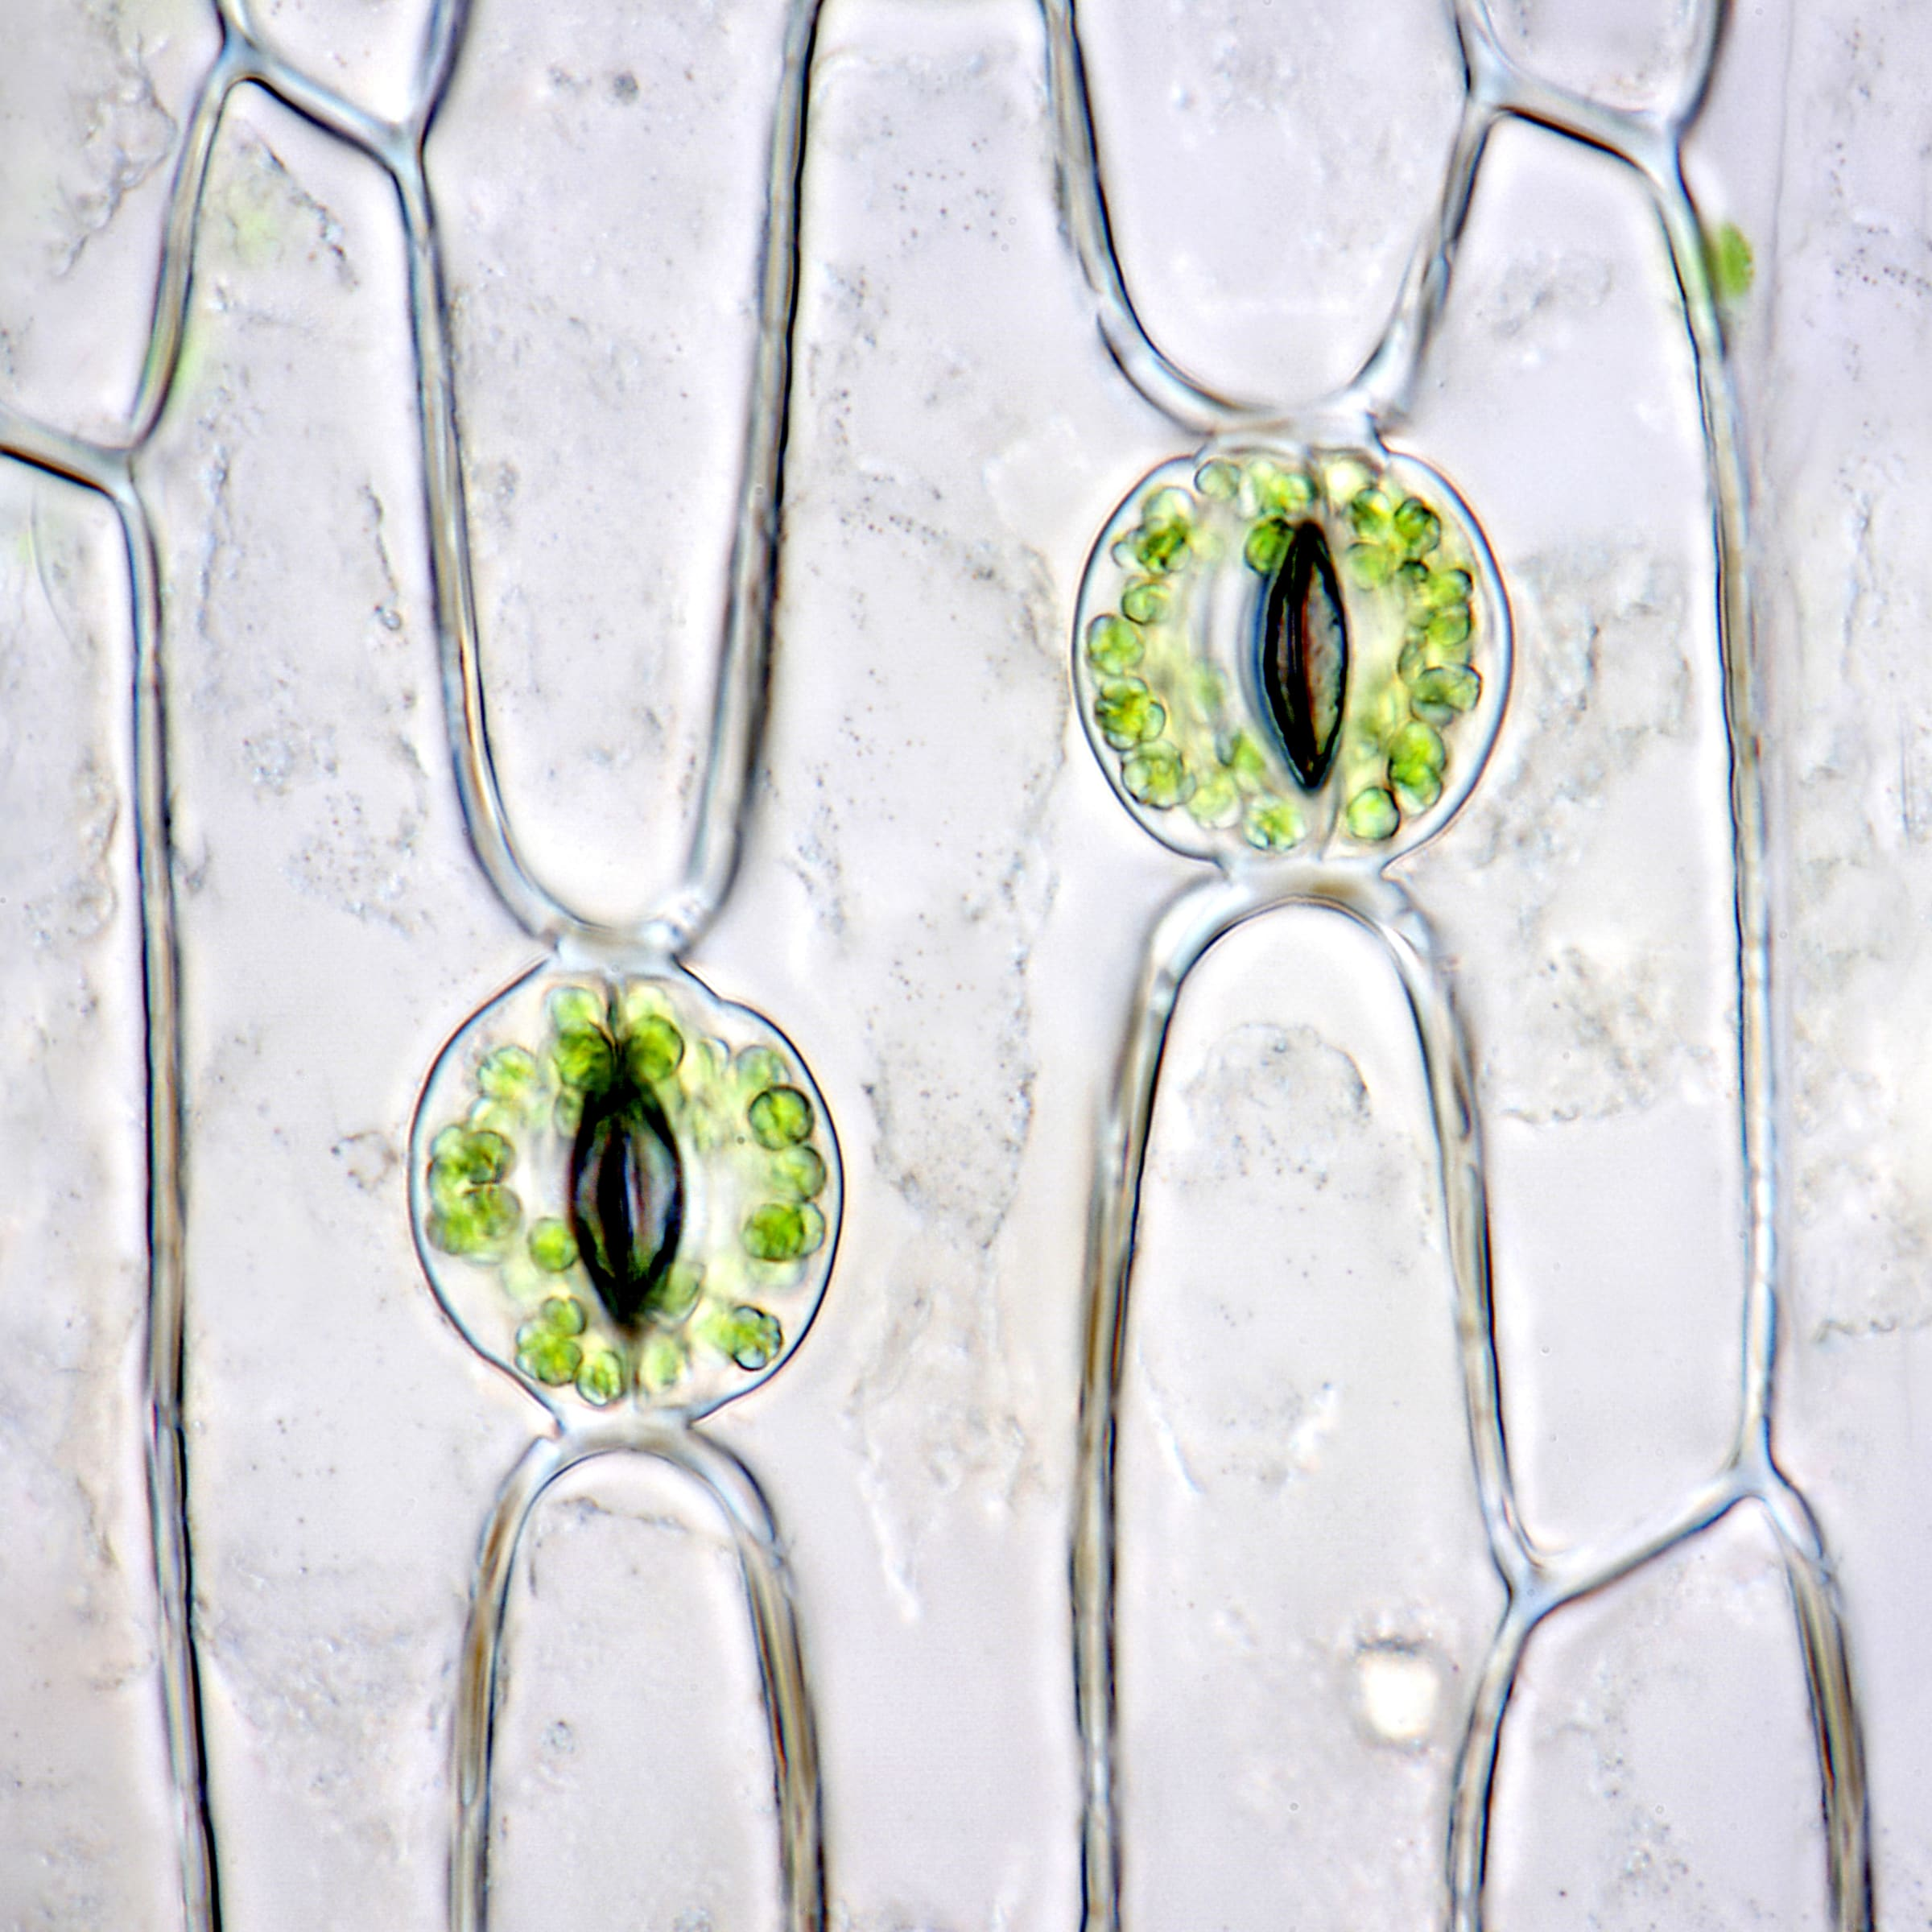 """<span class=""""link fancybox-details-link""""><a href=""""/exhibitions/92/works/artworks8216/"""">View Detail Page</a></span><div class=""""medium"""">glass spheres, optically clear epoxy resin, aqueous isolation, cast vinyl film, lacquer on contoured and shaped panel</div> <div class=""""dimensions"""">900mm x 900mm x 50mm</div>"""